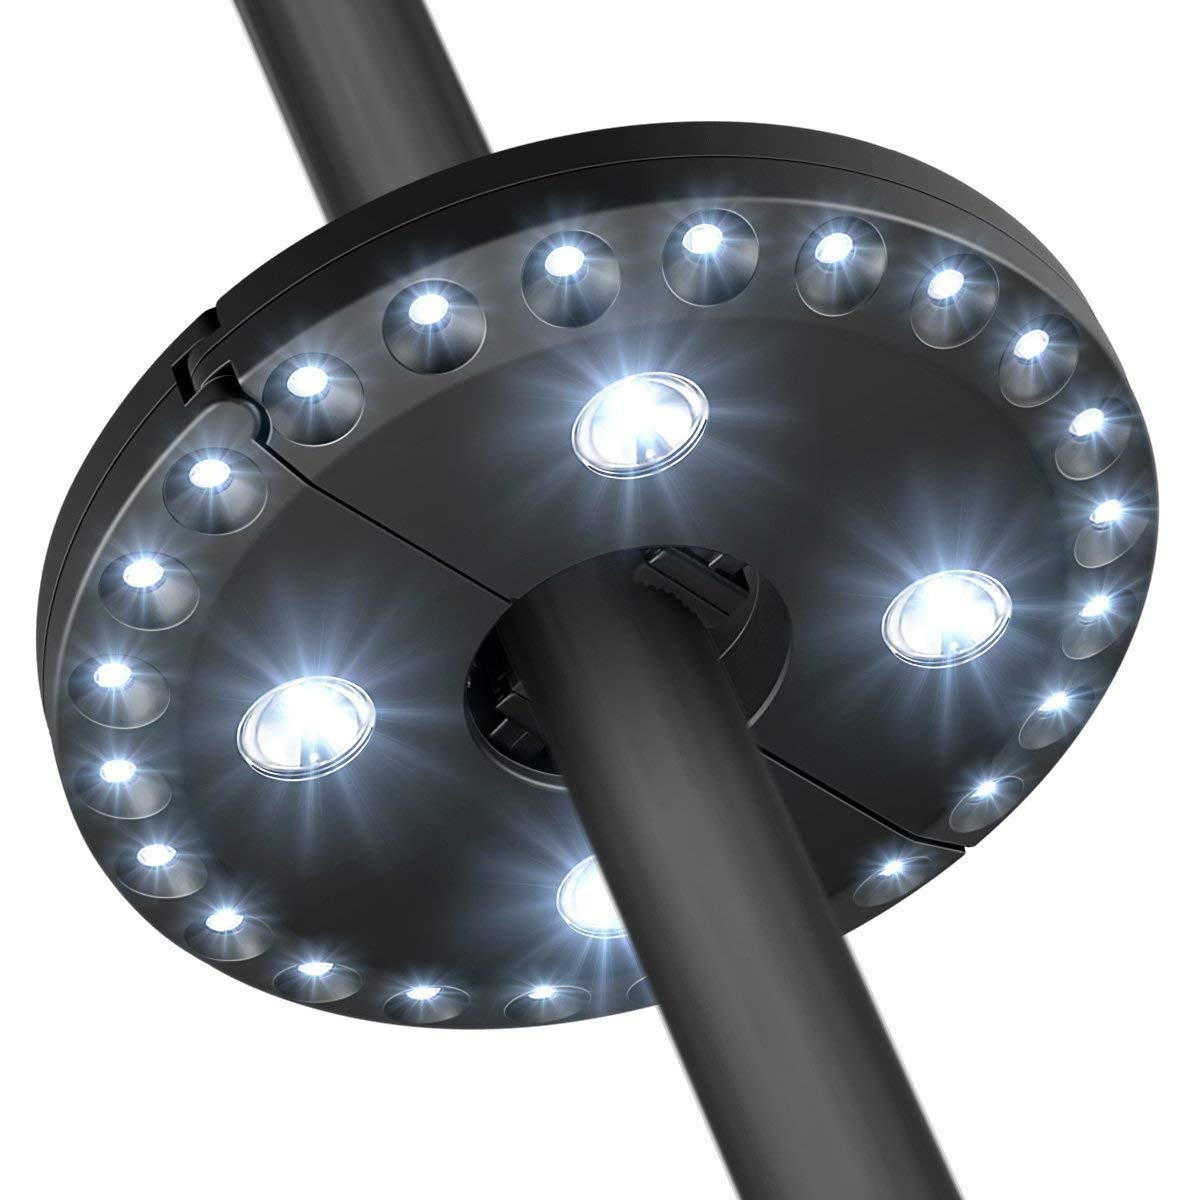 Youtree Patio Umbrella Light Outdoor Cantilever 3 Lighting Mode Offset Pool Patio Cordless 28 LED Stand Deck Large 200 Lumens Light Table Umbrellas Camping Light